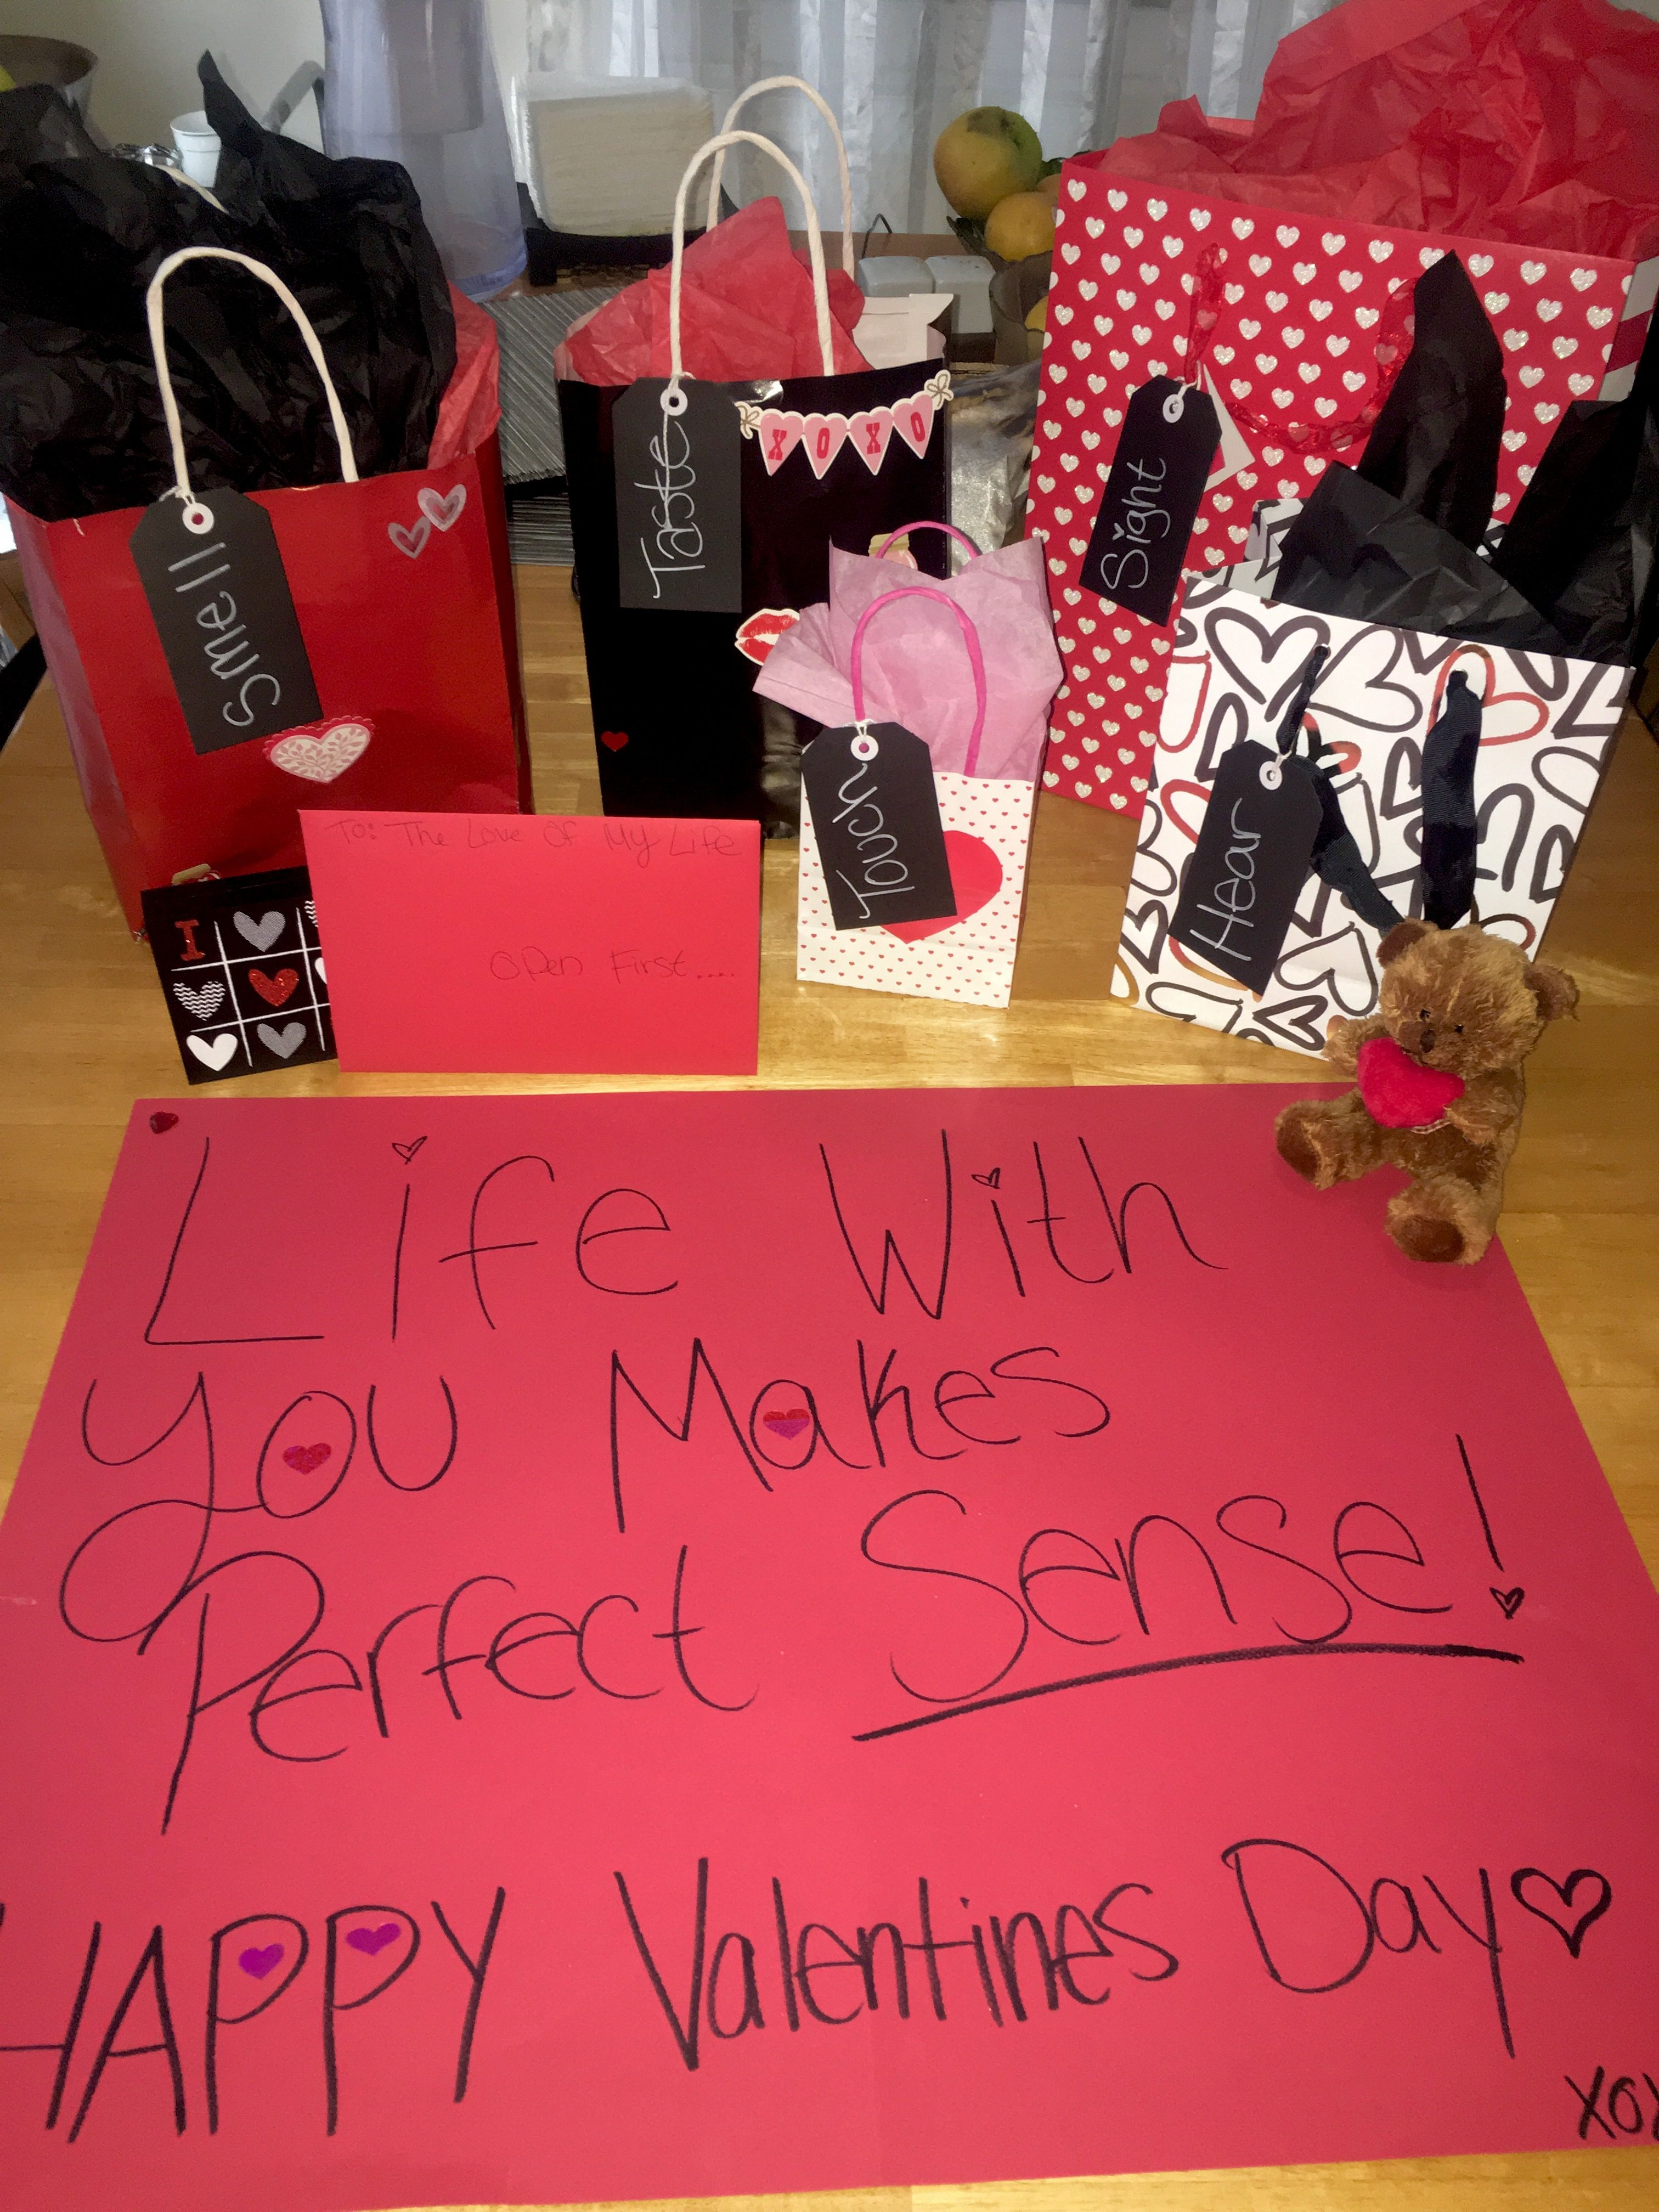 5 Senses Gift For Him Happy Valentine S Day Babe Crafty